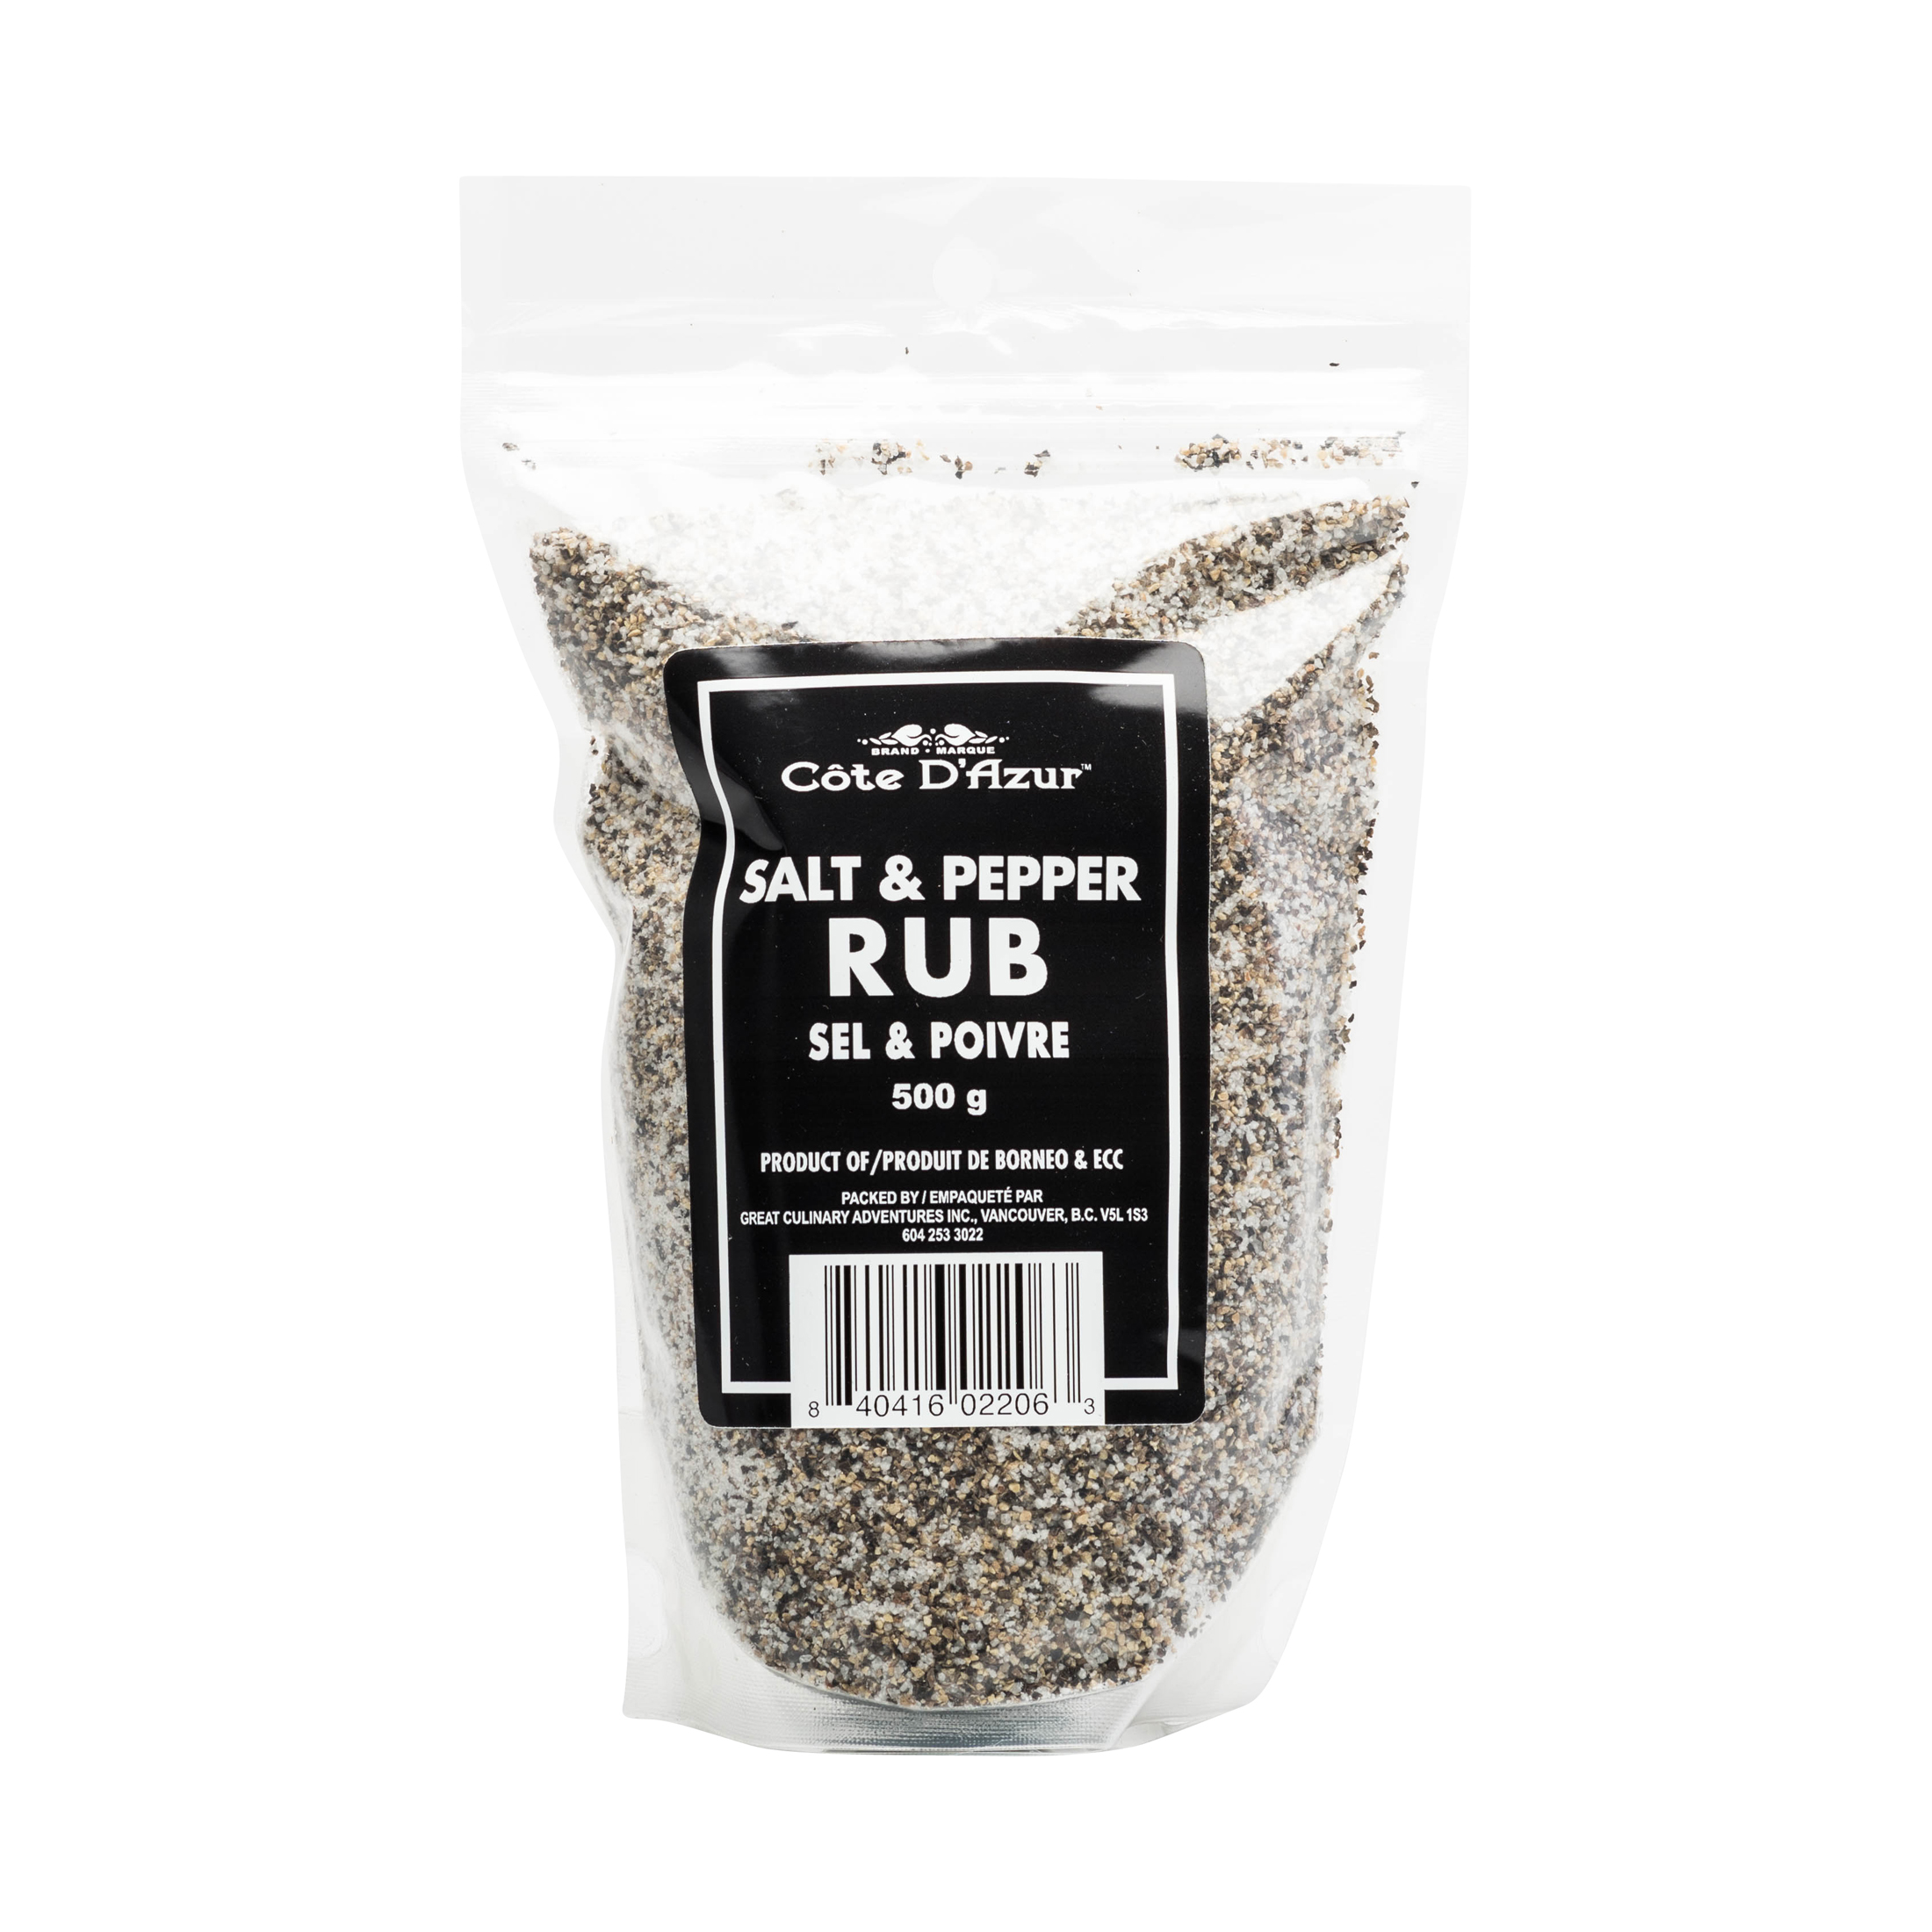 SALT & PEPPER RUB REFILL BAG